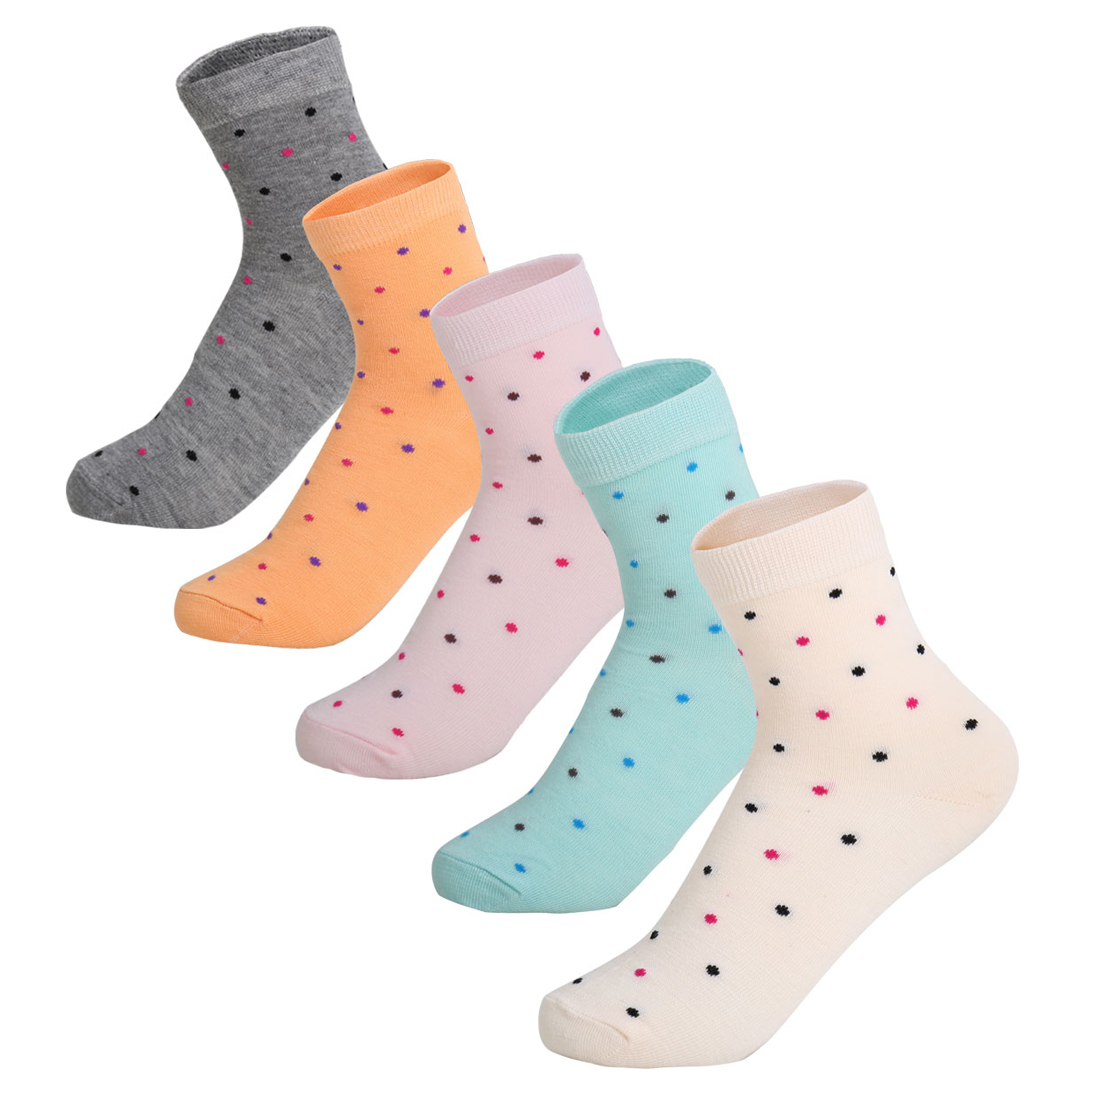 Women 5 Pack Ankle Length Elastic Cuff Dots Socks Assorted 9-11